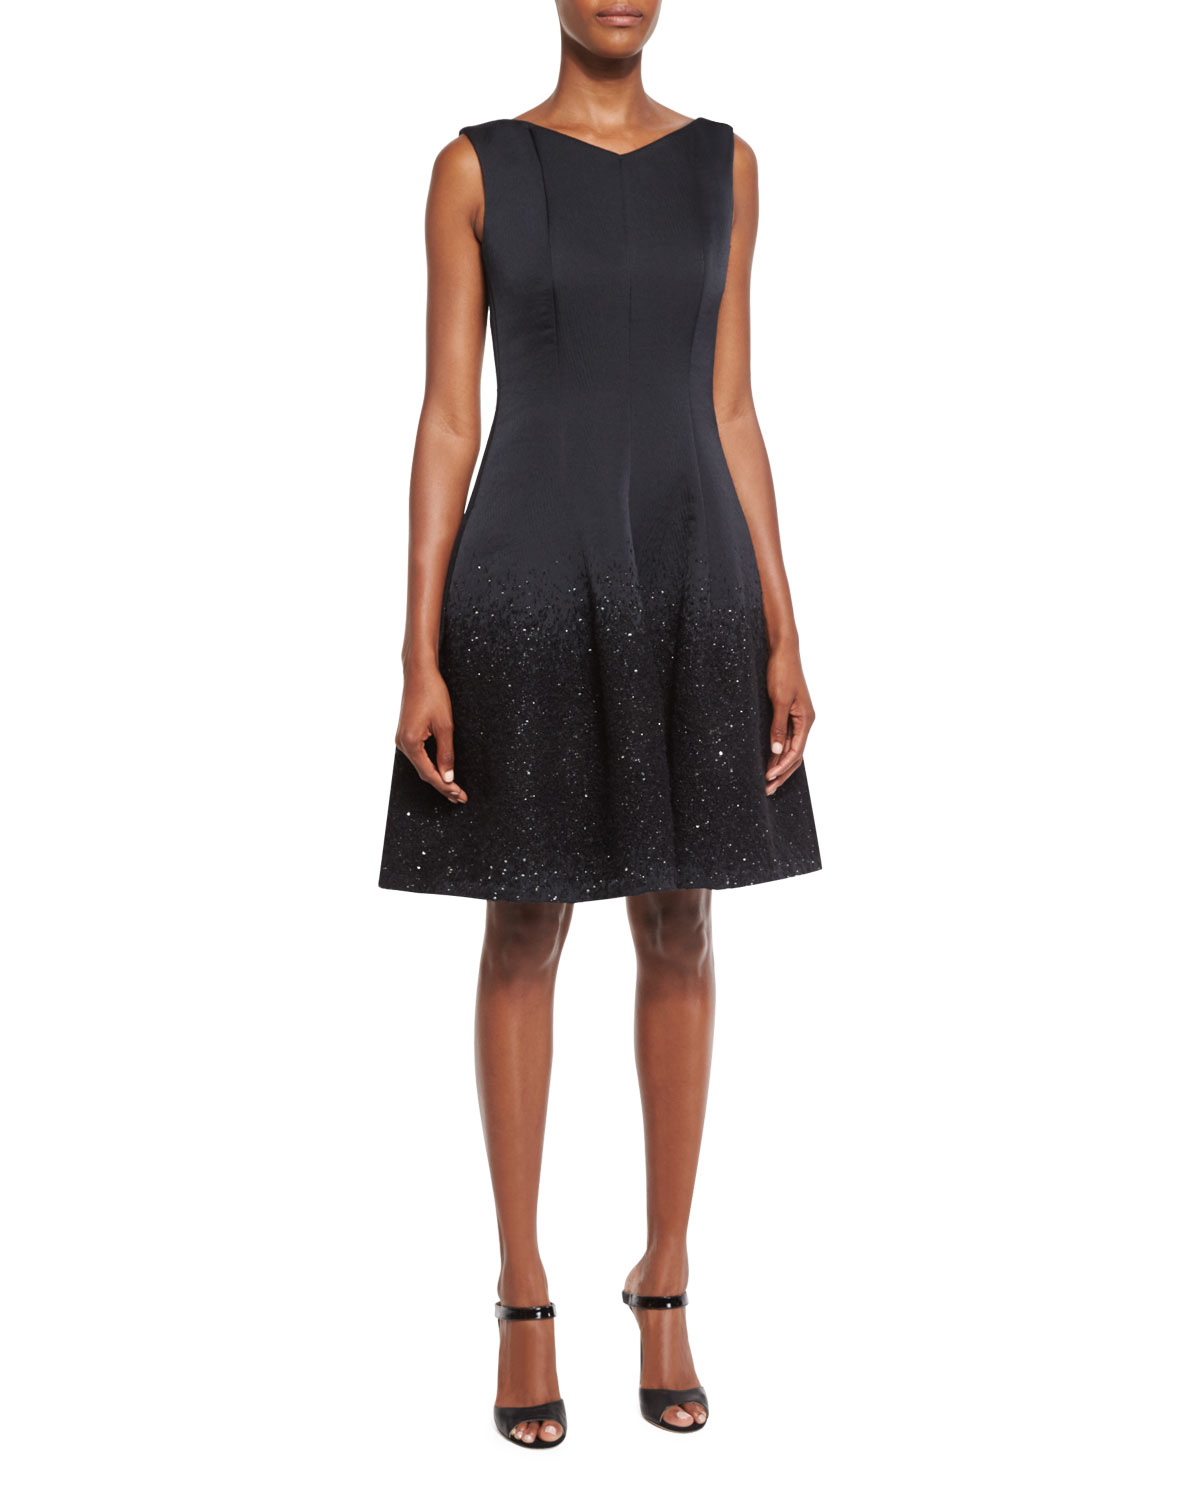 Gomma Degrade Sequin Cocktail Dress, Black